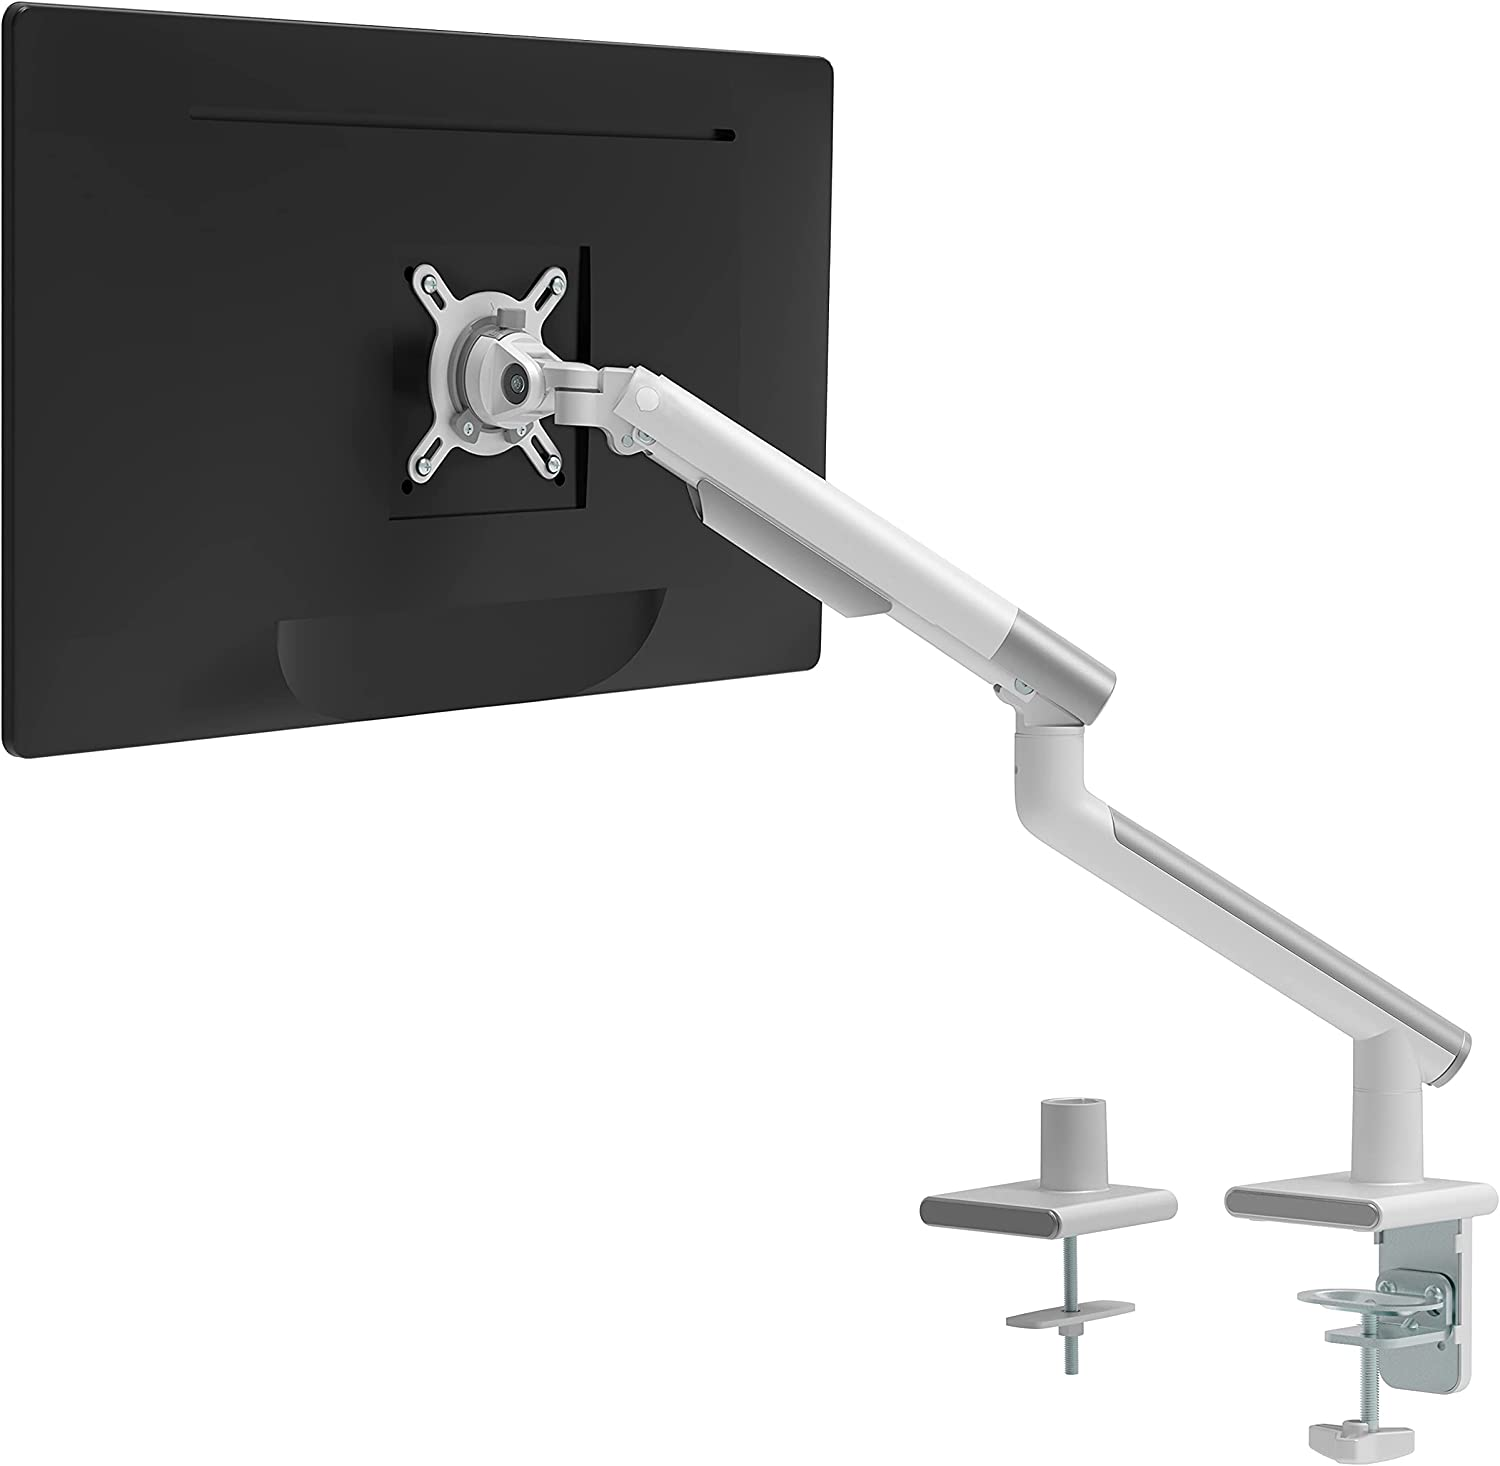 WALI Single Monitor Mount with Mechanical Spring Tension Indicator Fully Adjustable VESA Bracket with Clamp, Grommet Mounting Base for Display Up to 32 inch, 22lbs Weight Capacity (MATI001-W), White